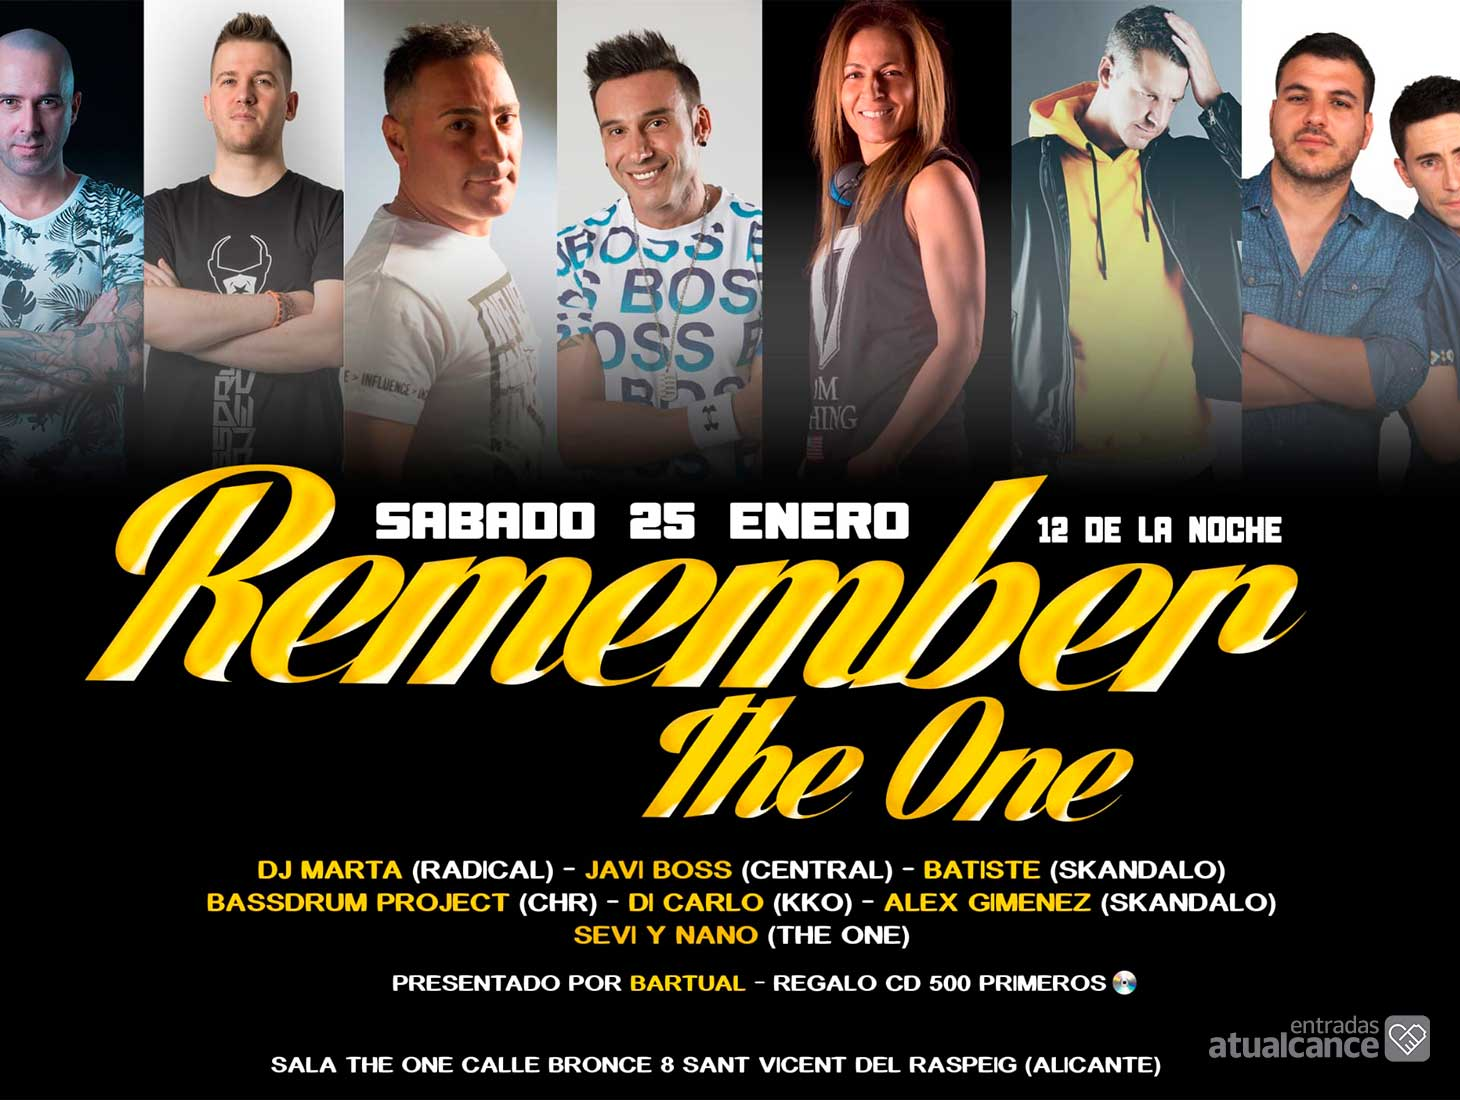 25-de-enero-remember-the-one-5df8fc5b8845f.jpeg